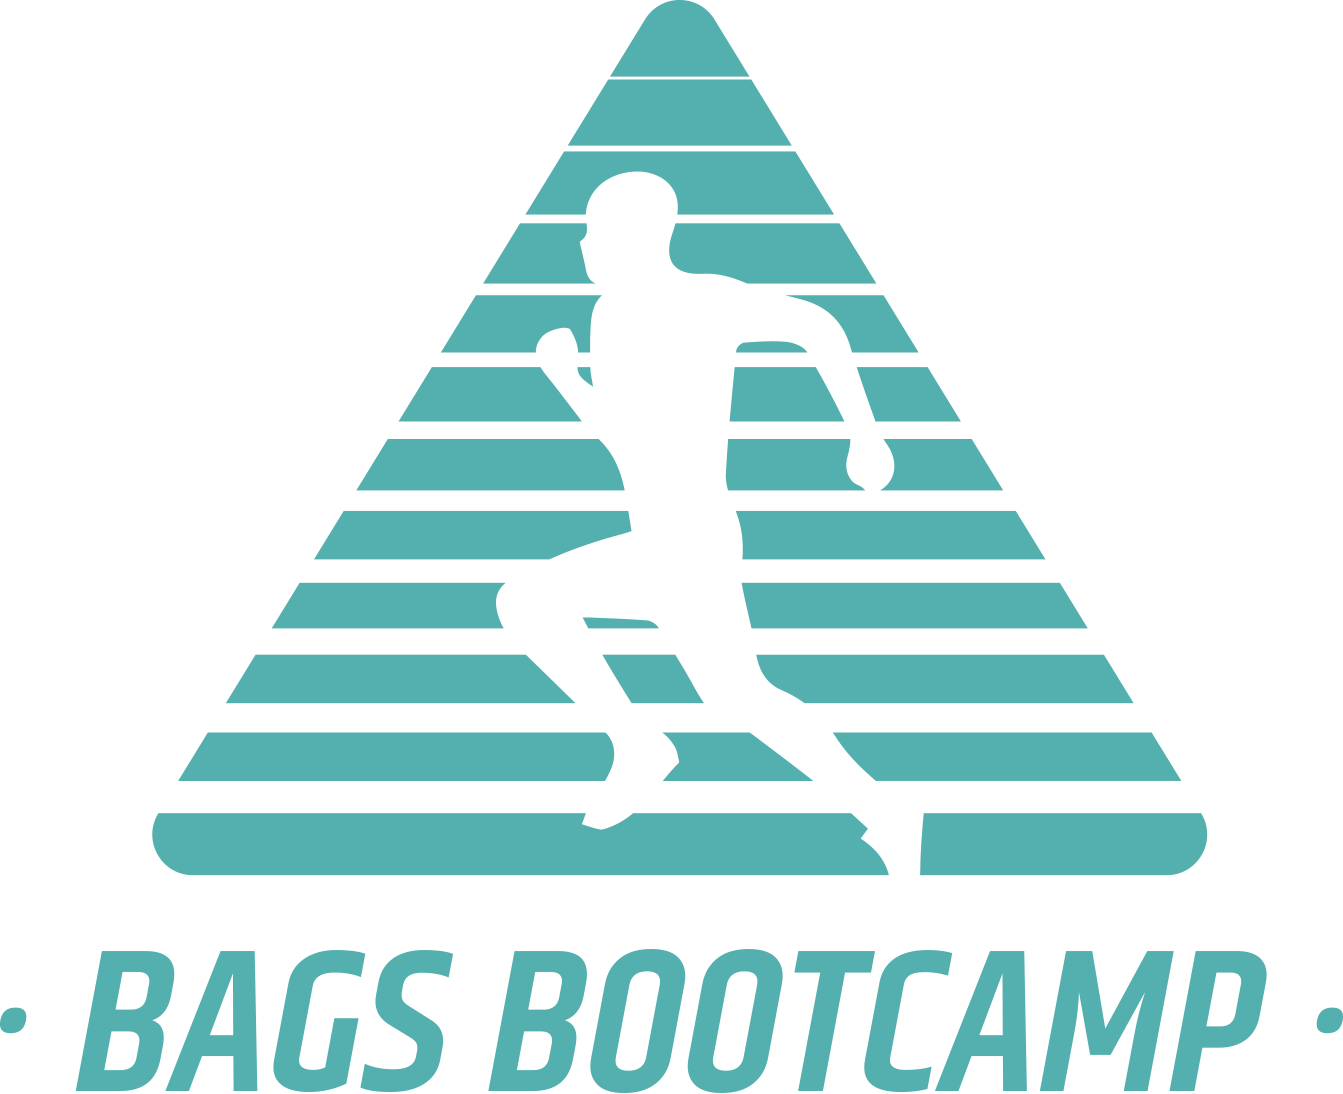 Bags Bootcamp